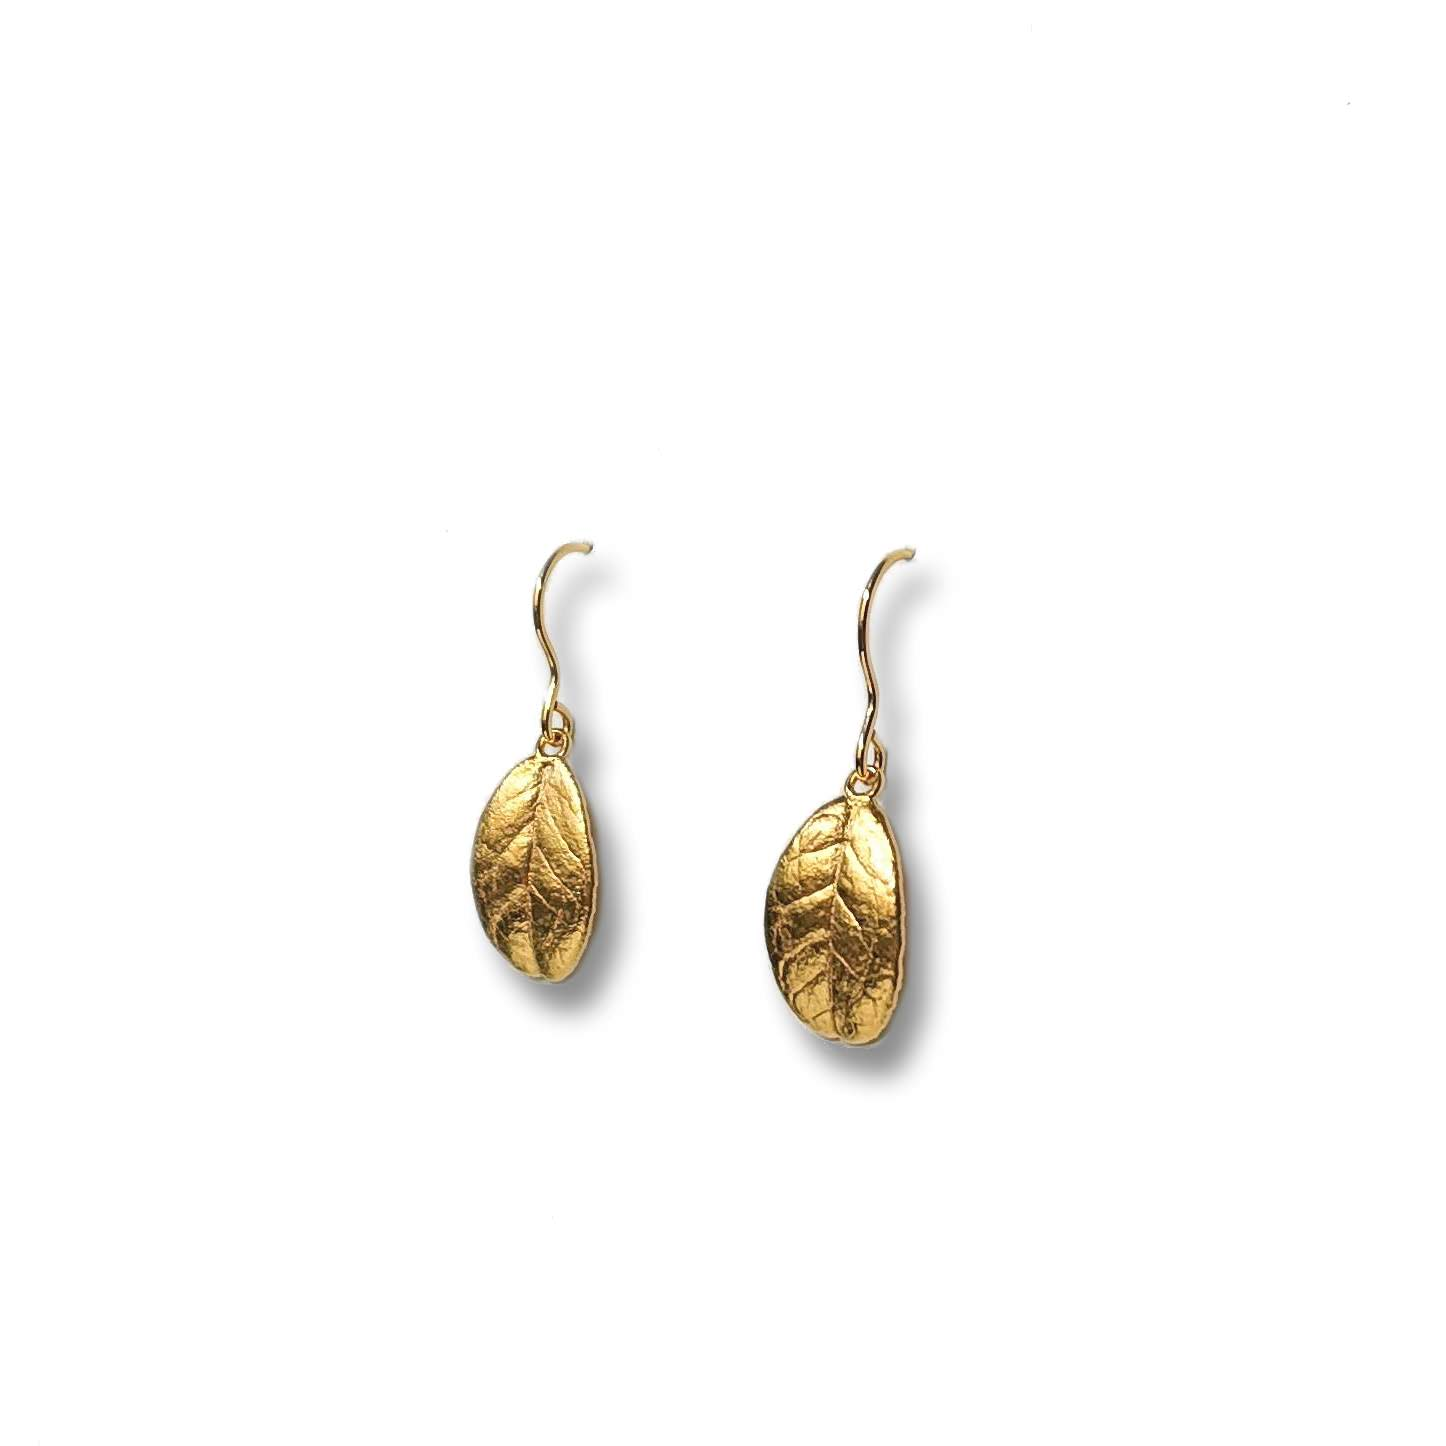 Eternal Lingon earrings, golden